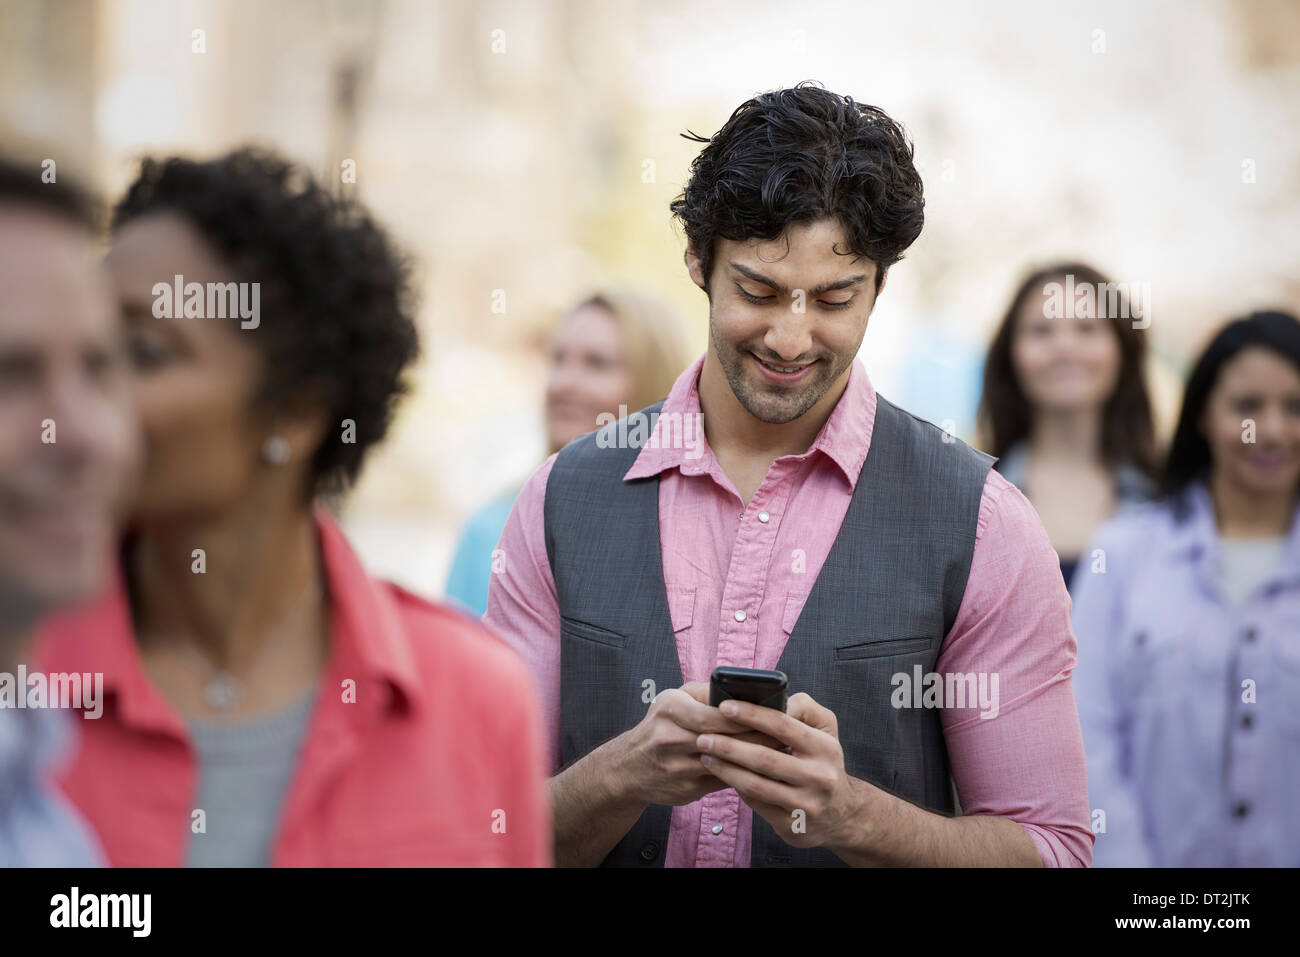 People outdoors in the city in spring time A man looking at his cell phone - Stock Image